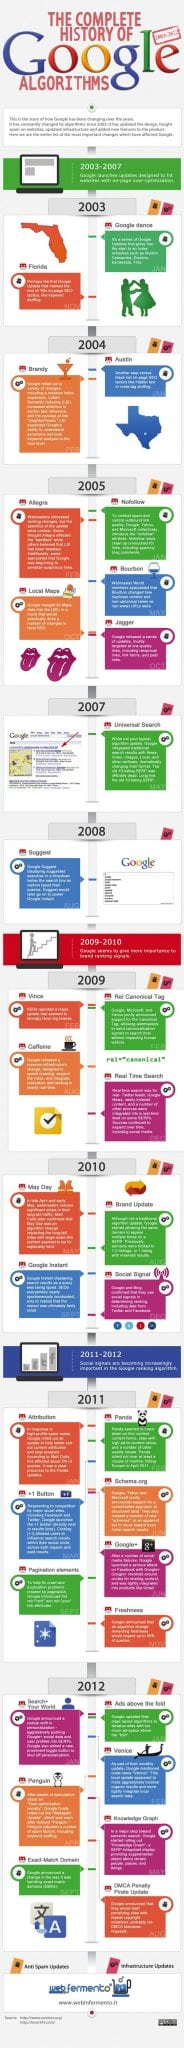 history of google algorithm updates